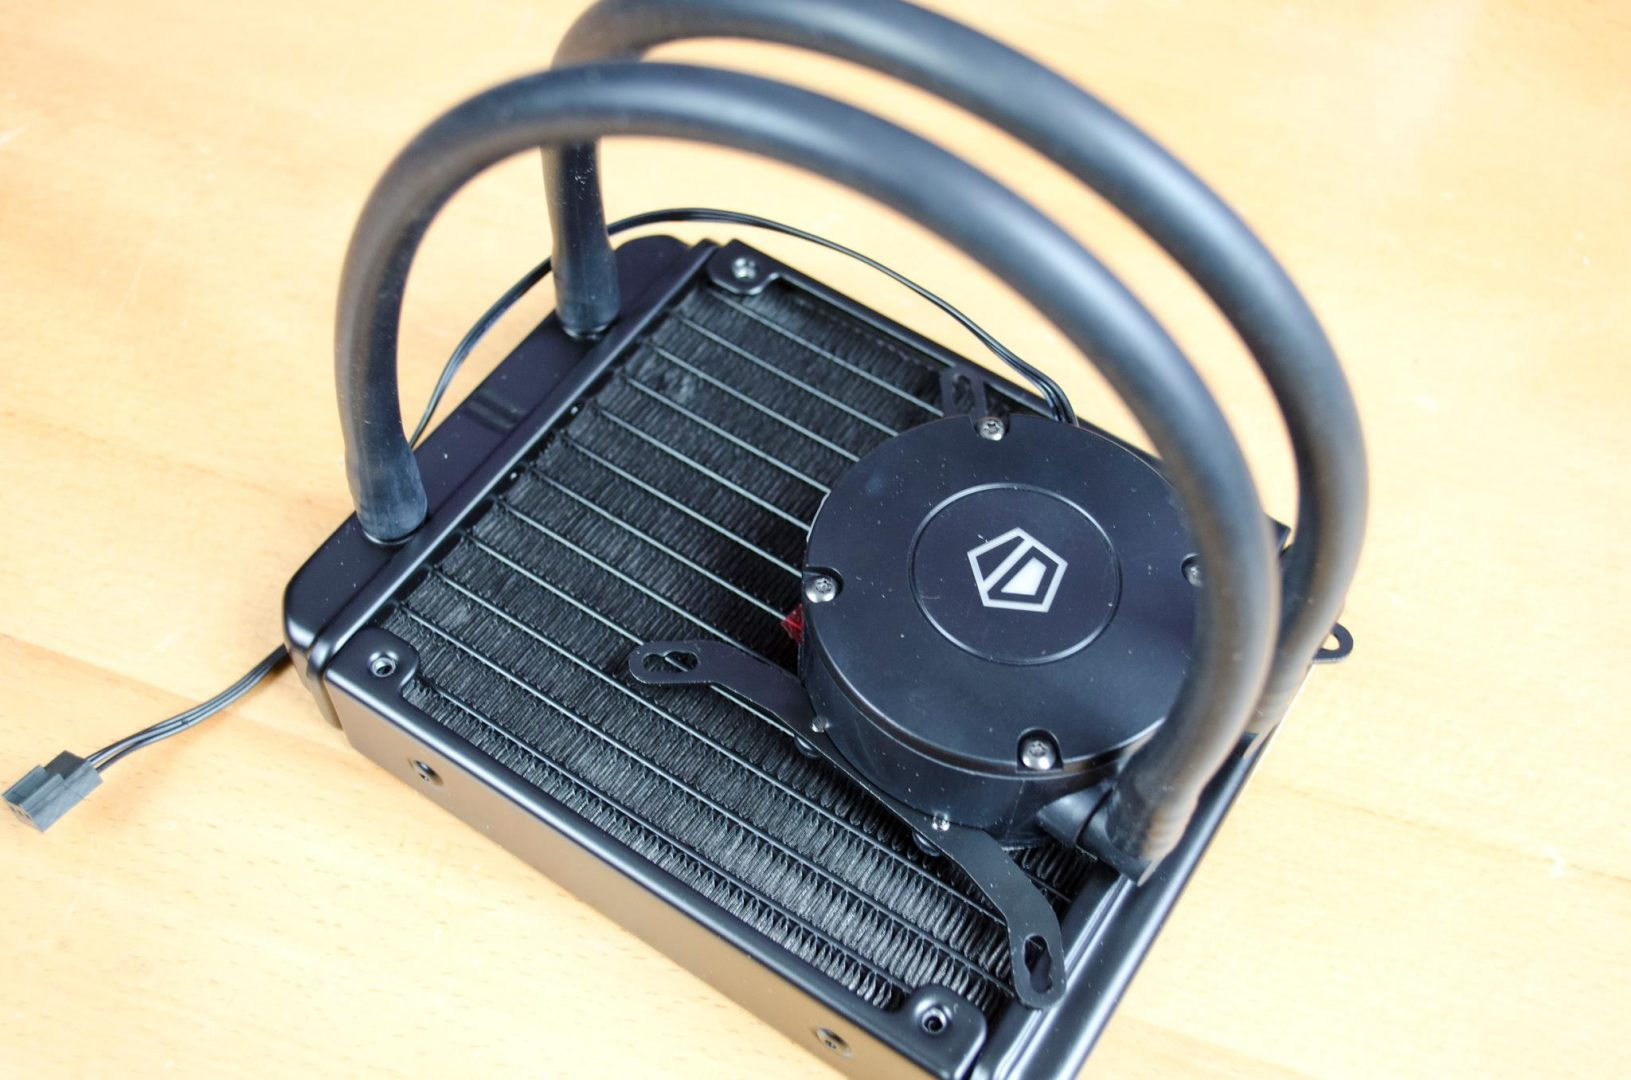 ID COOLING FROSTFLOW 120 CPU COOLER REVIEW_8